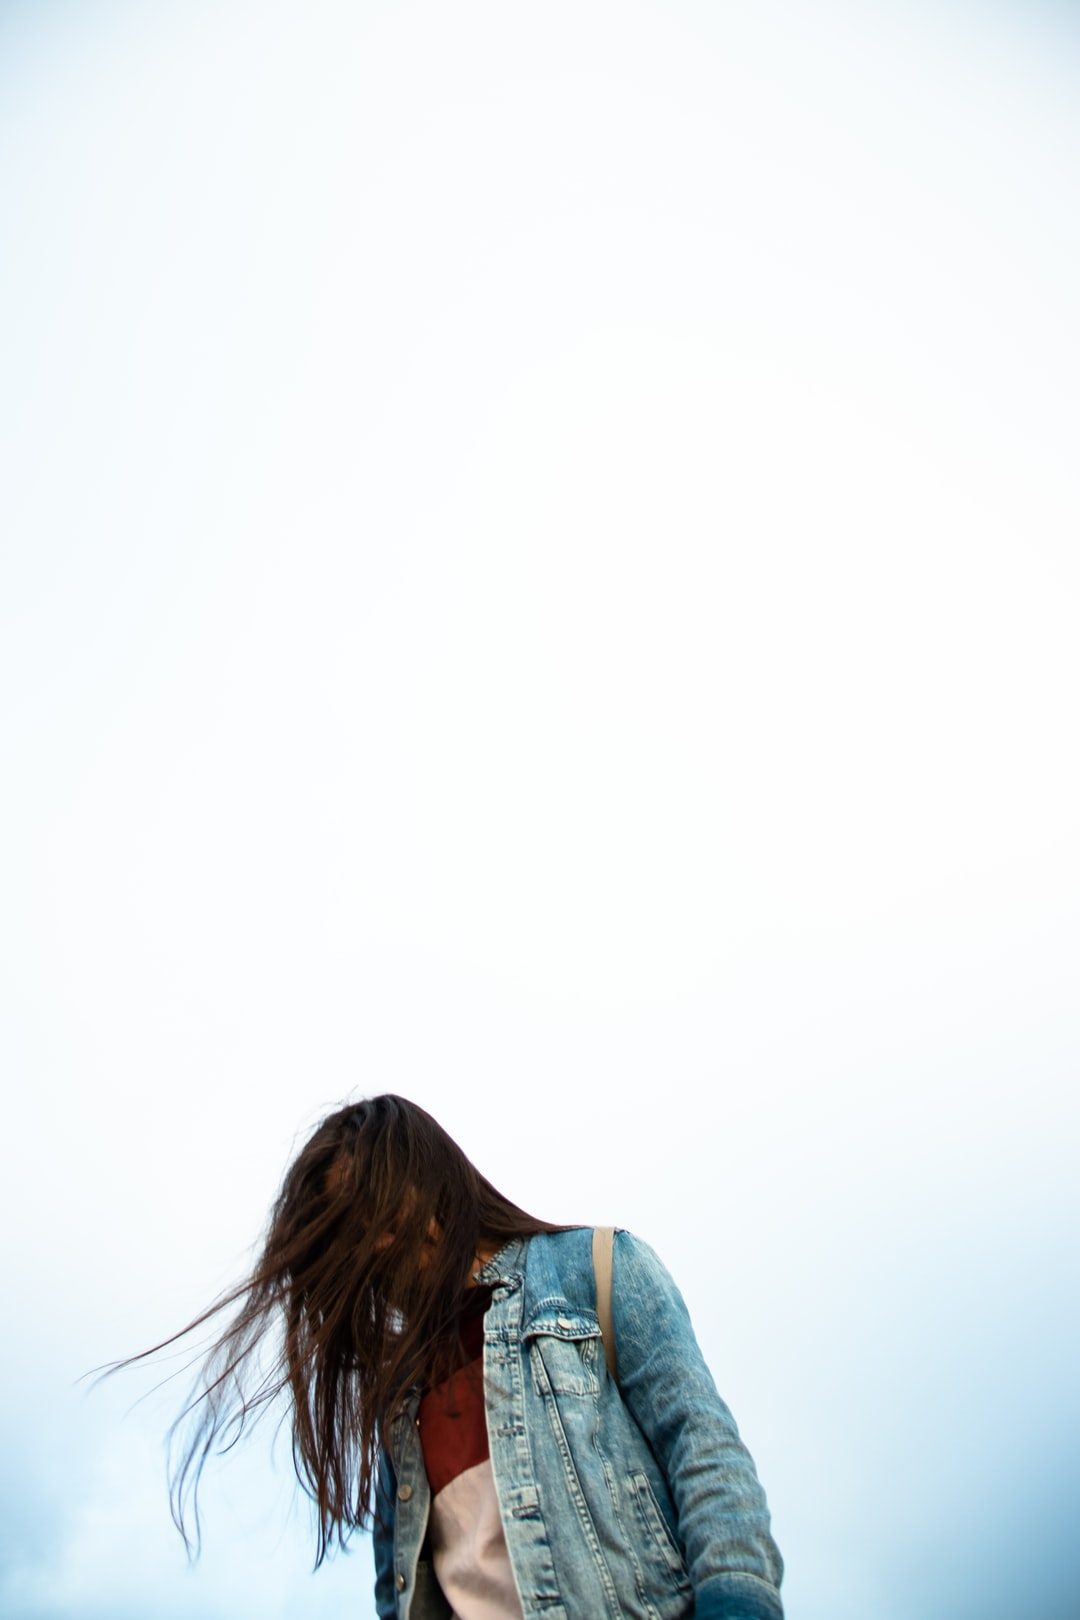 Instagram| @jordanniranjan  Girl with brown hair looking down with the wind blowing through her hair. The background is foggy with hints of blue from clouds clearing up on top the mountain.